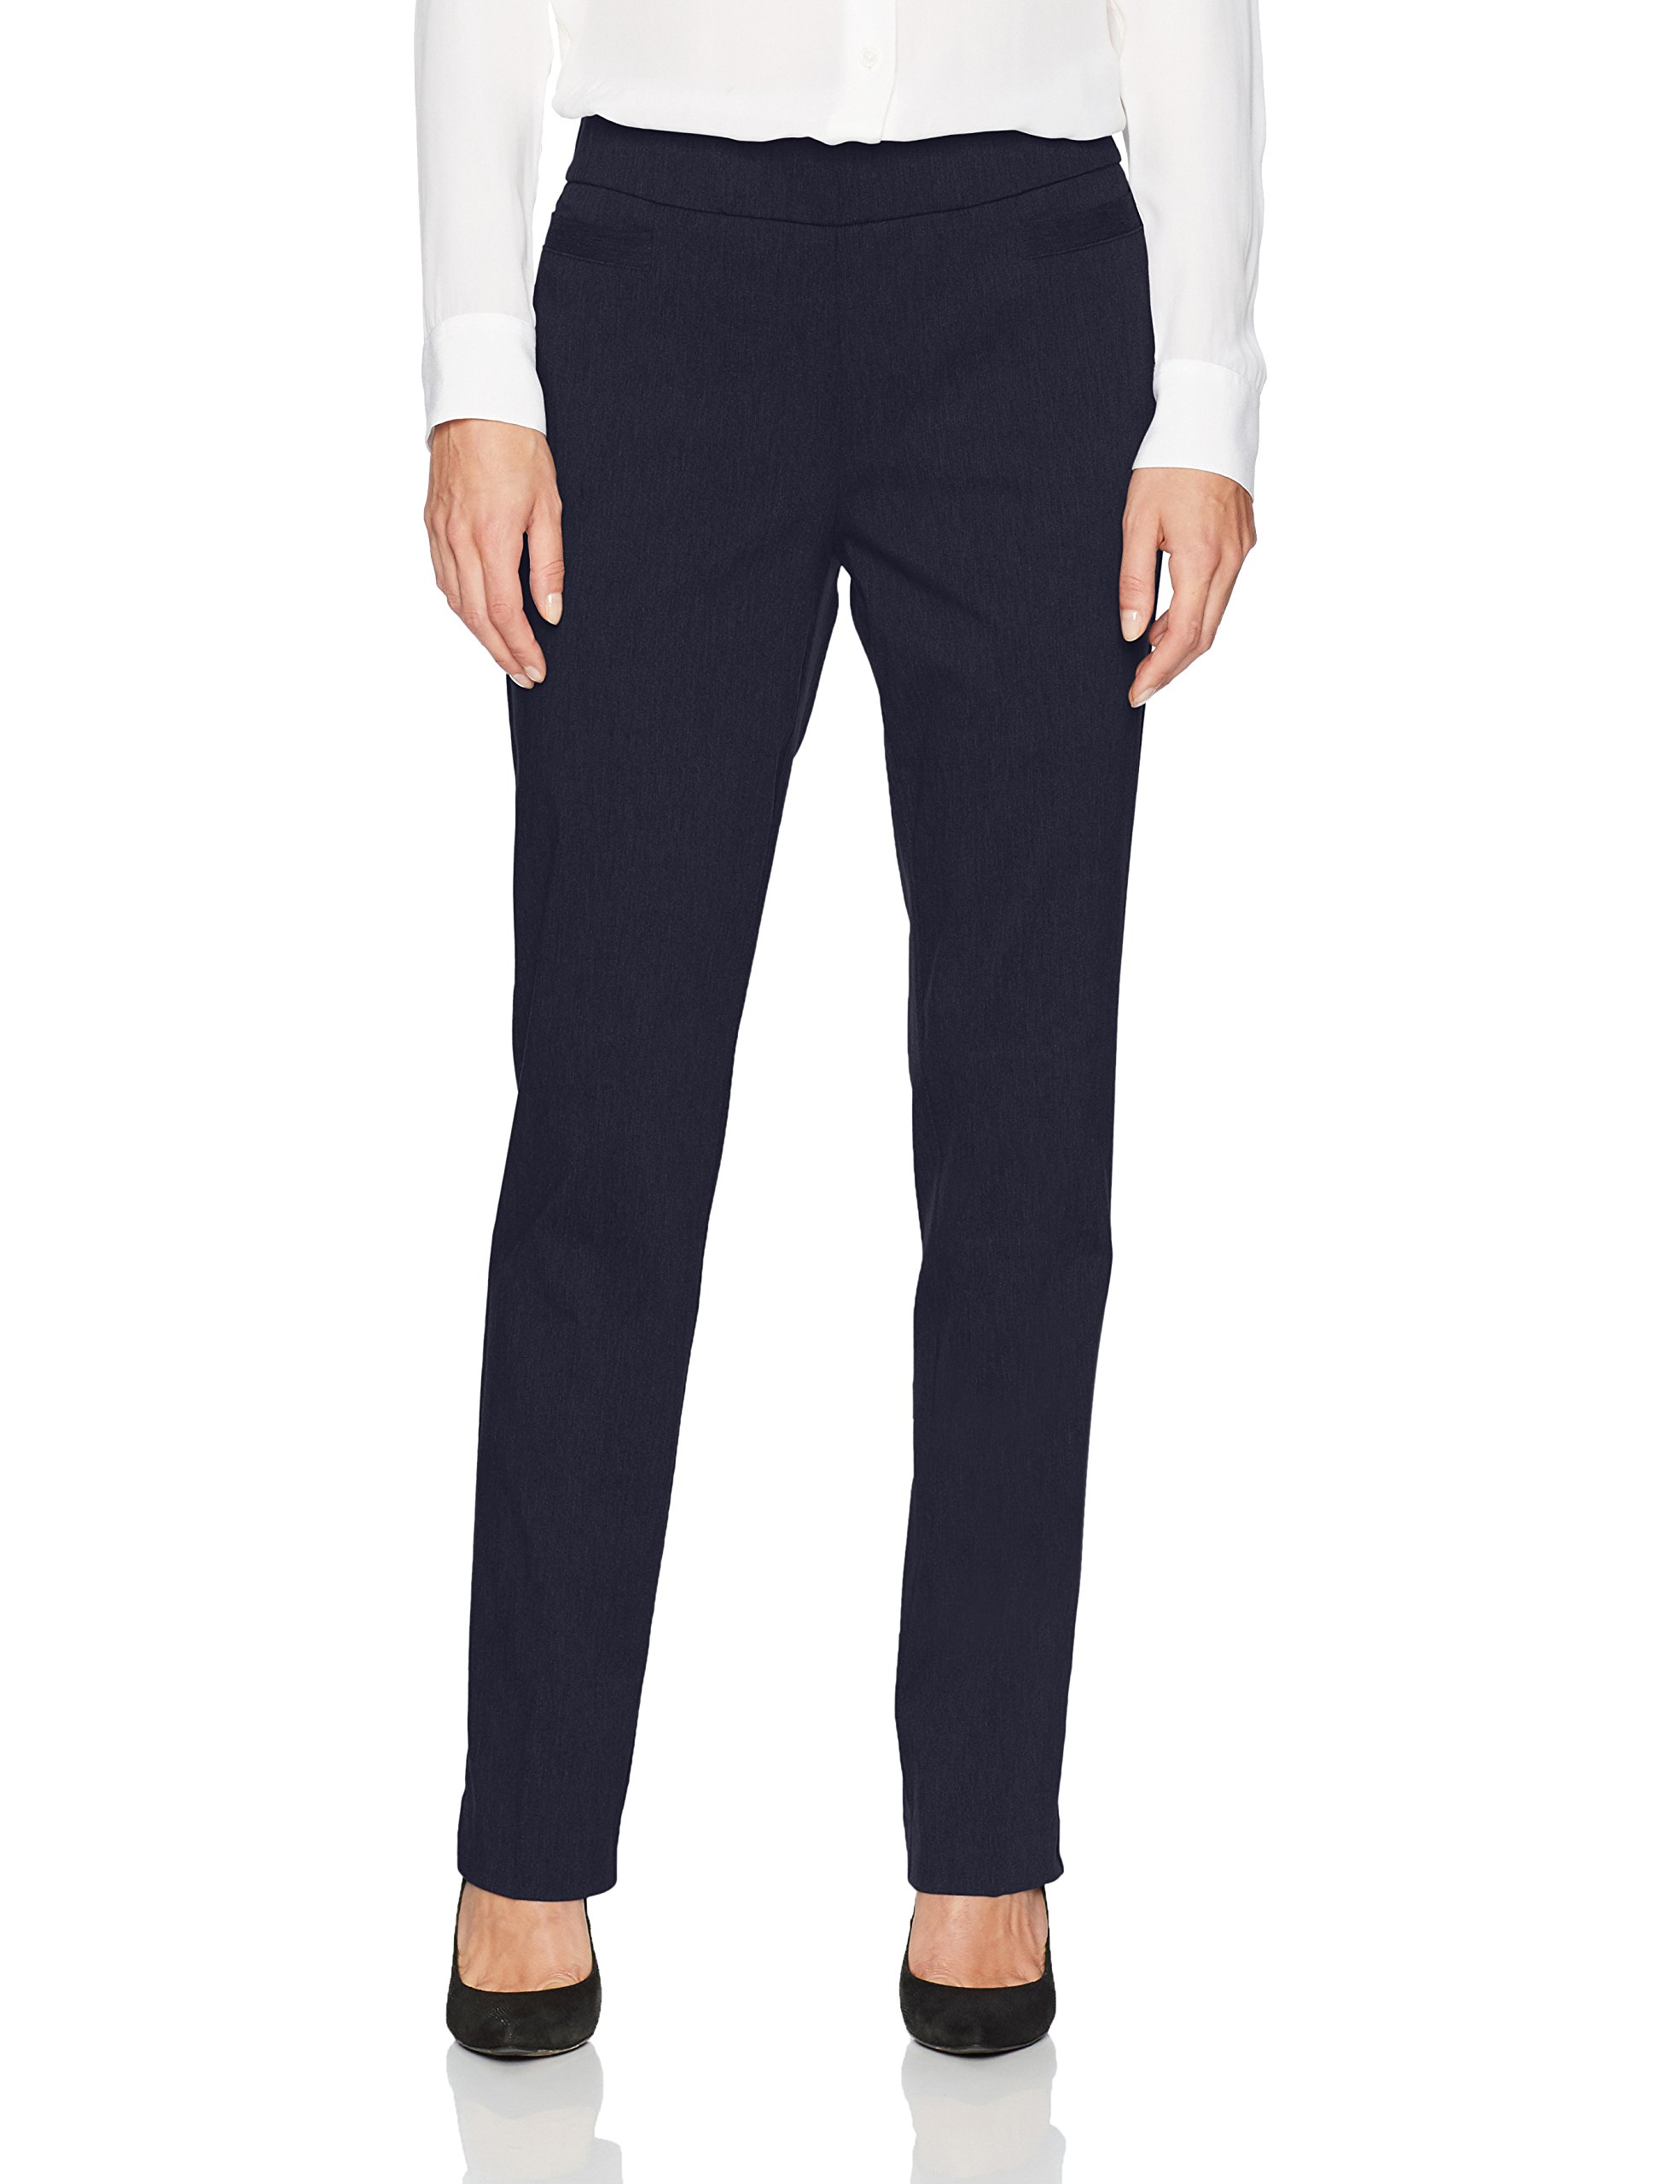 Briggs New York Women's Super Stretch Millennium Welt Pocket Pull on Career Pant, Navy, 12 by Briggs